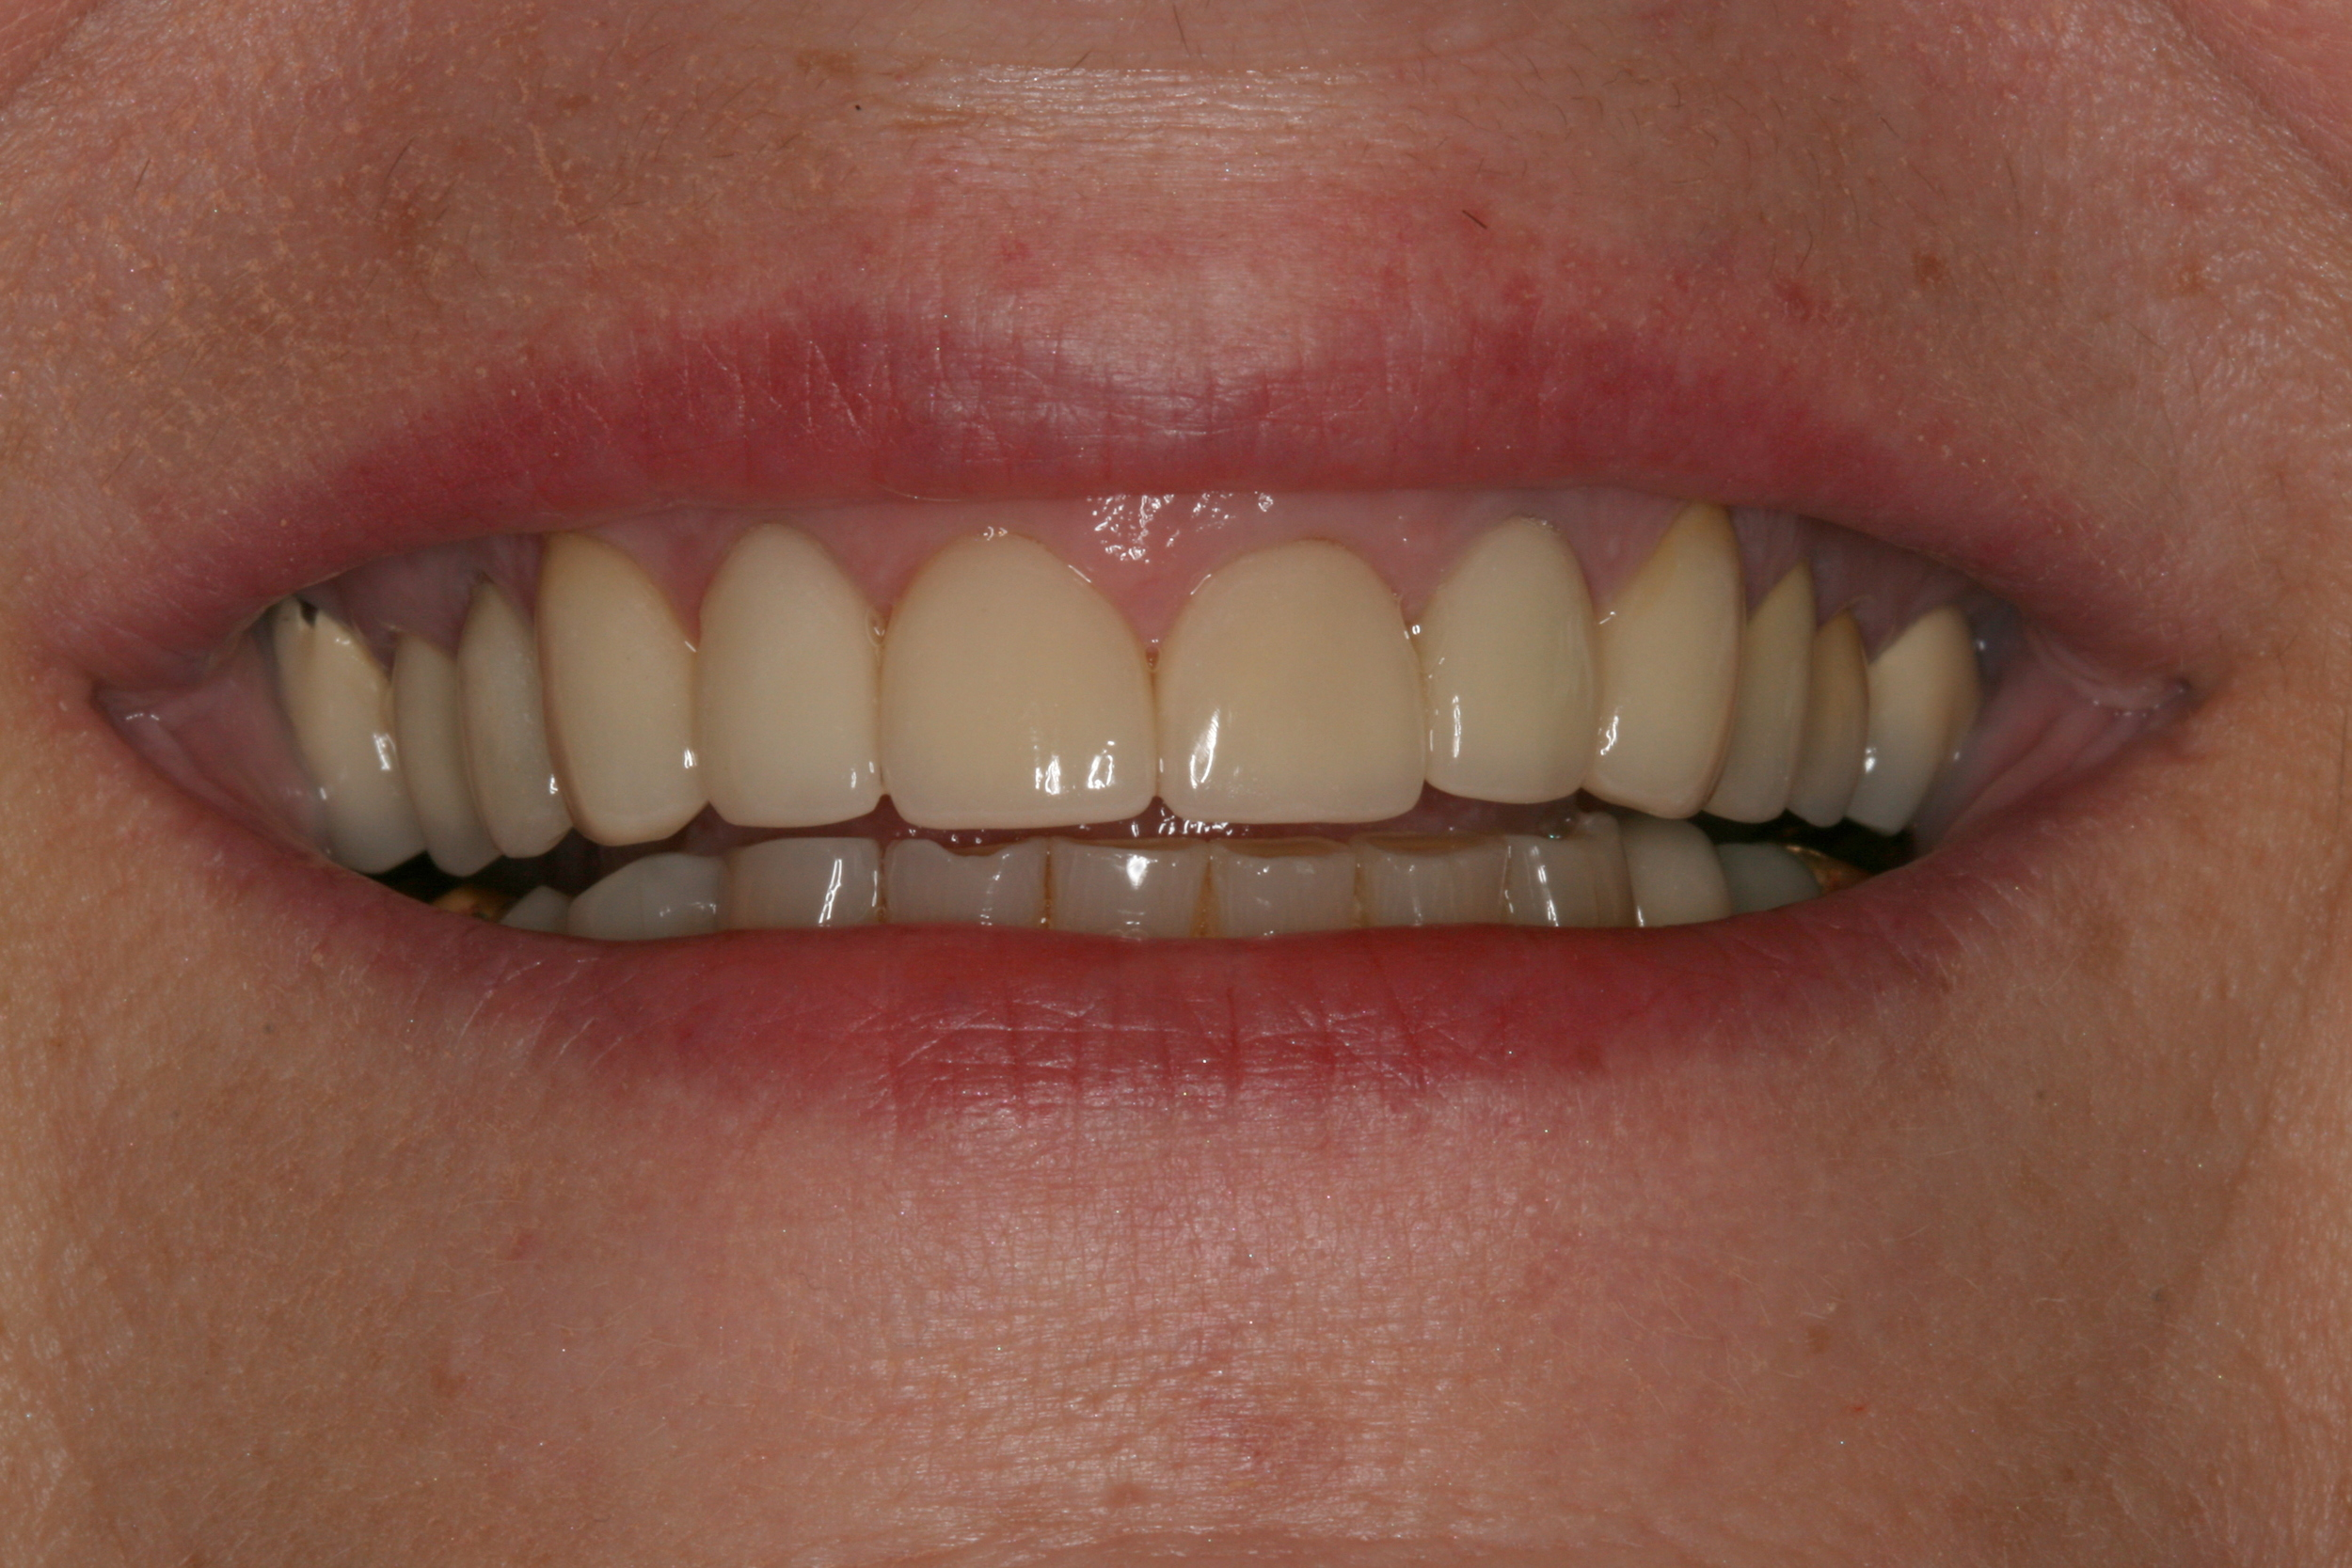 The_Tuddenham_Road_Dental_Surgery_Smile_Makeovers.JPG